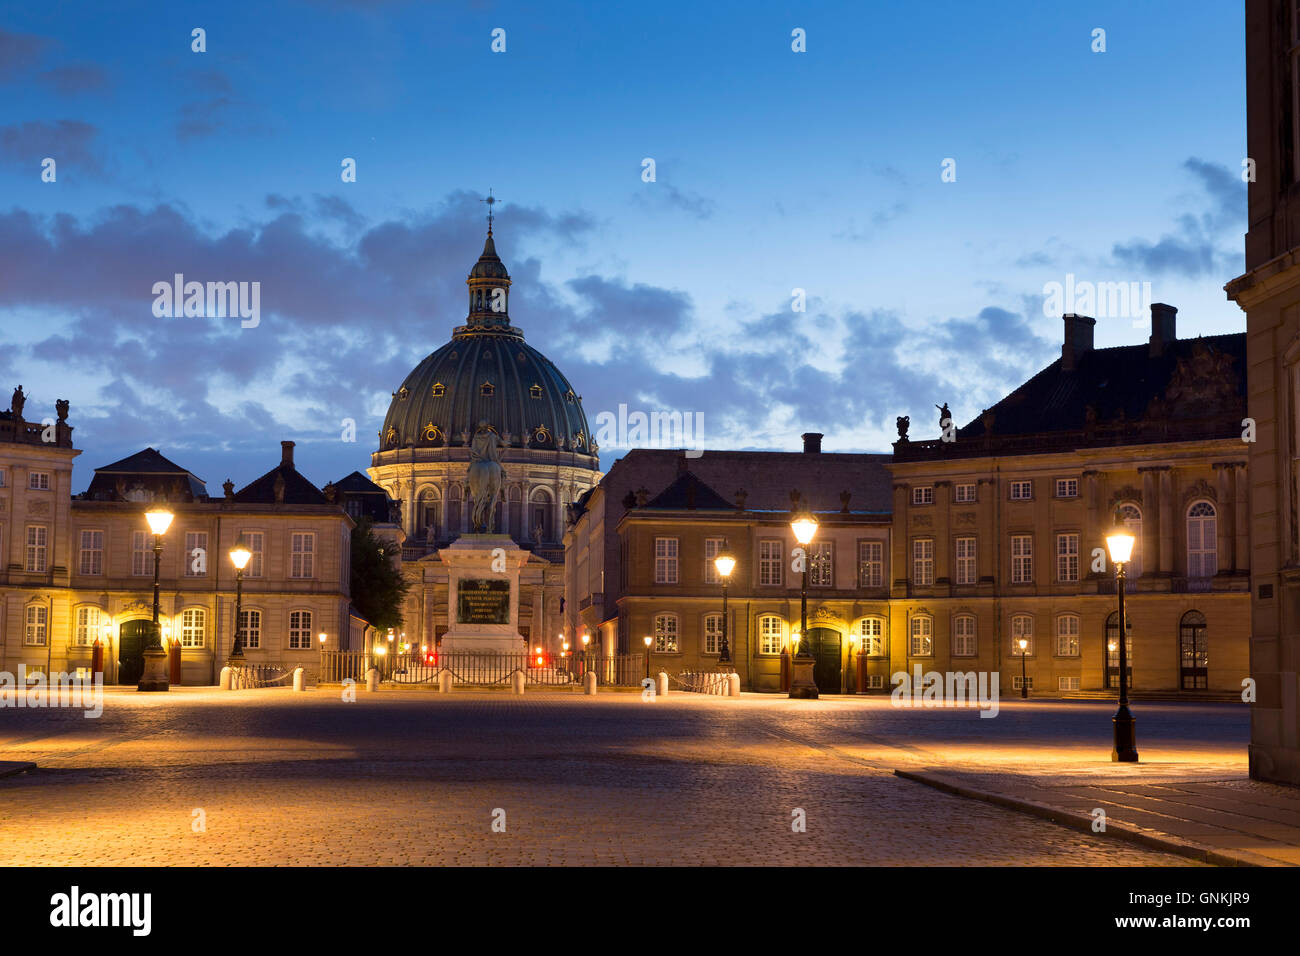 Amalienborg Royal Palace in Copenhagen, Denmark - Stock Image